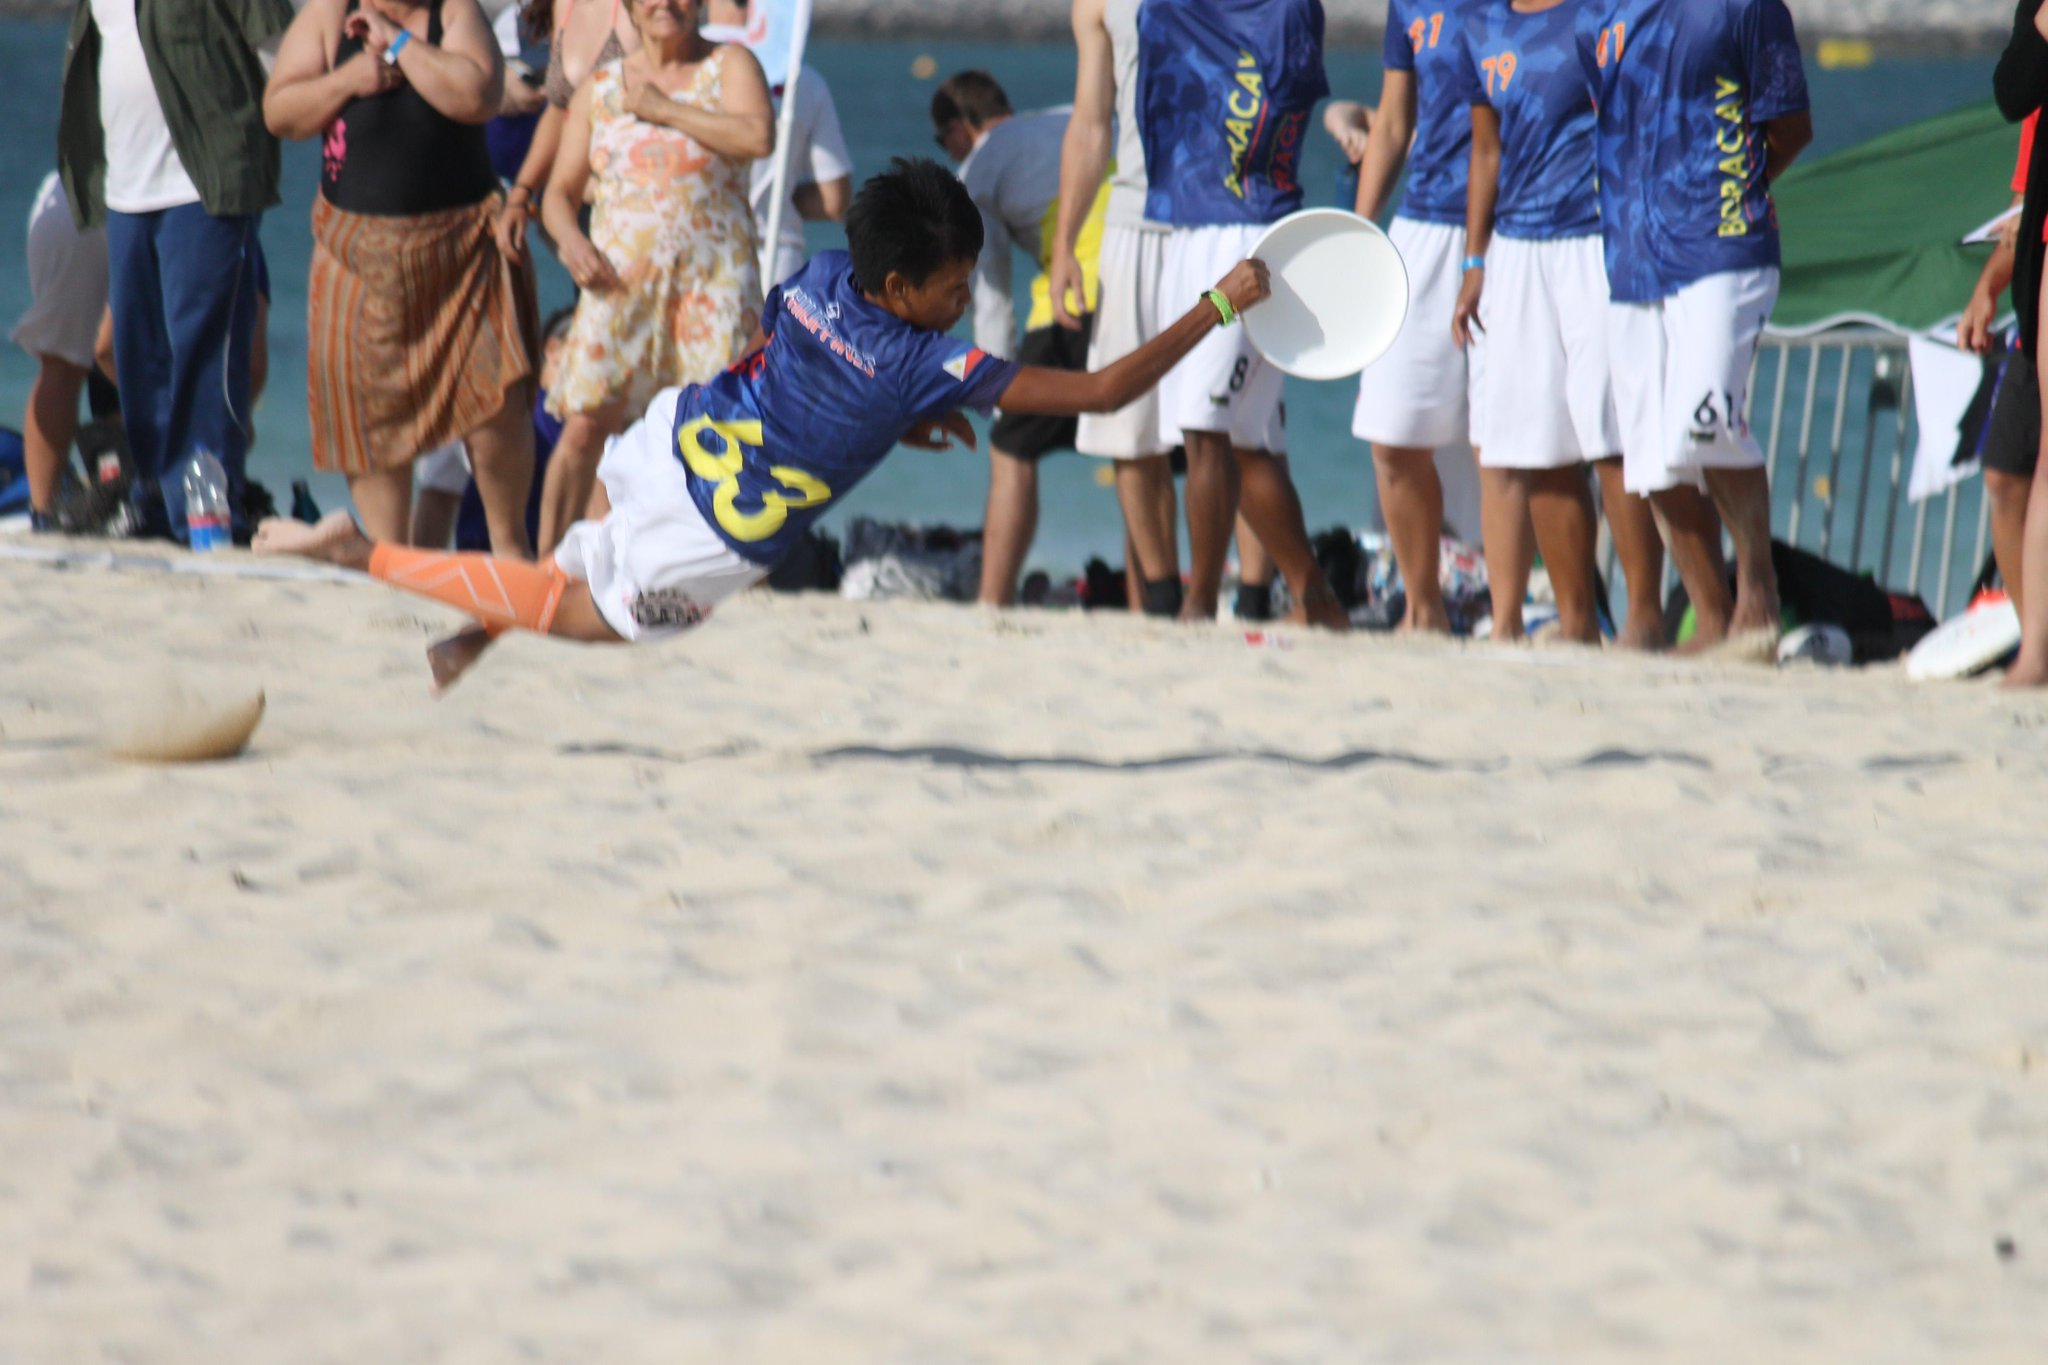 #WCBU2015 Action from Dubai http://t.co/NxJYj5NntH <a href='http://twitter.com/duncanebradbury/status/578104592333819904/photo/1' target='_blank'>See original &raquo;</a>